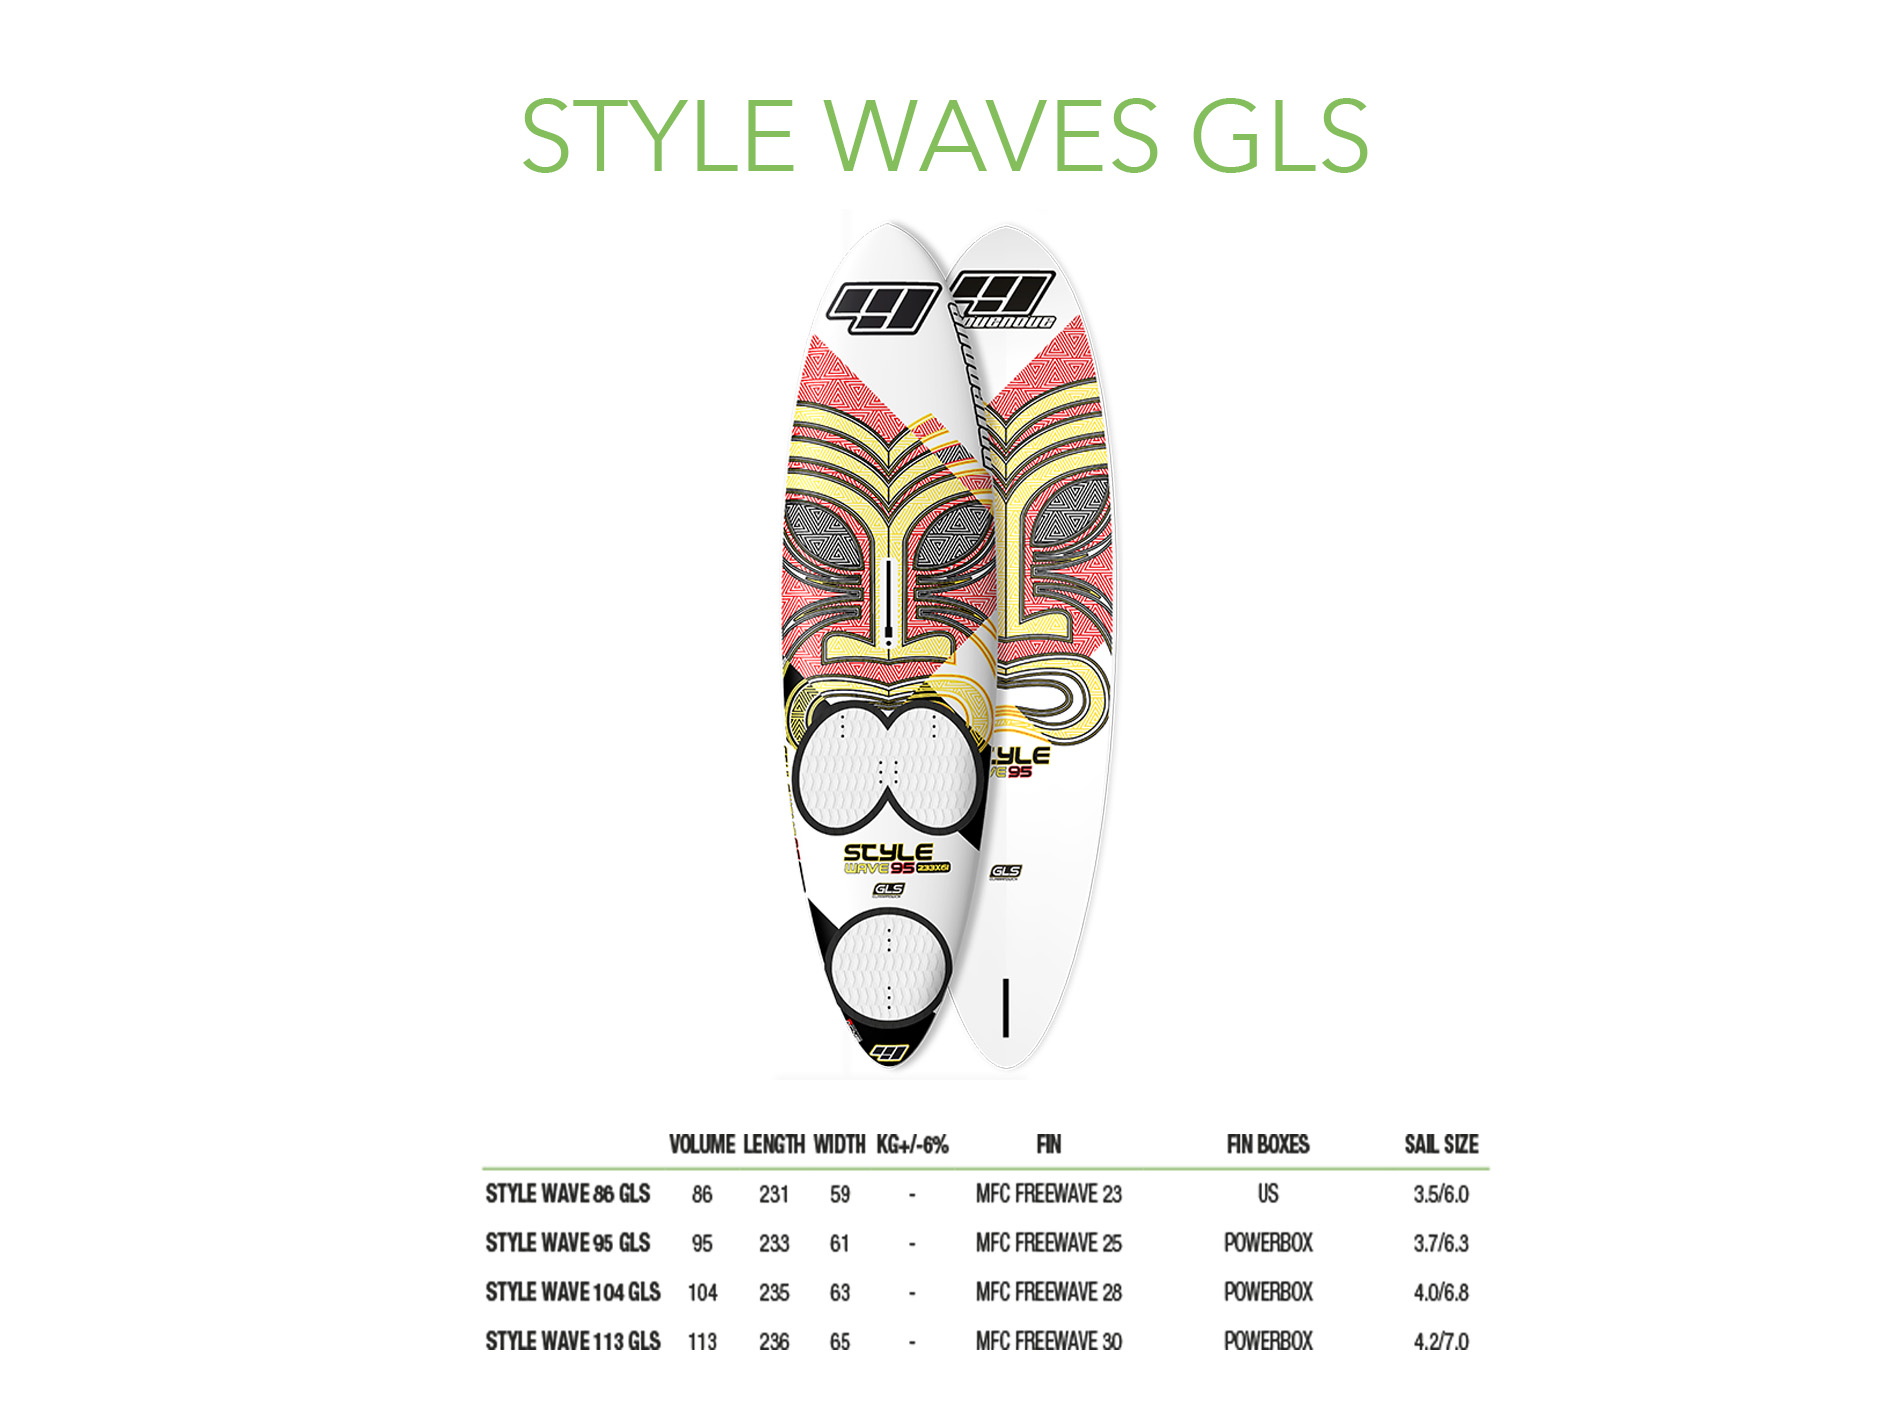 STYLE WAVES GLS